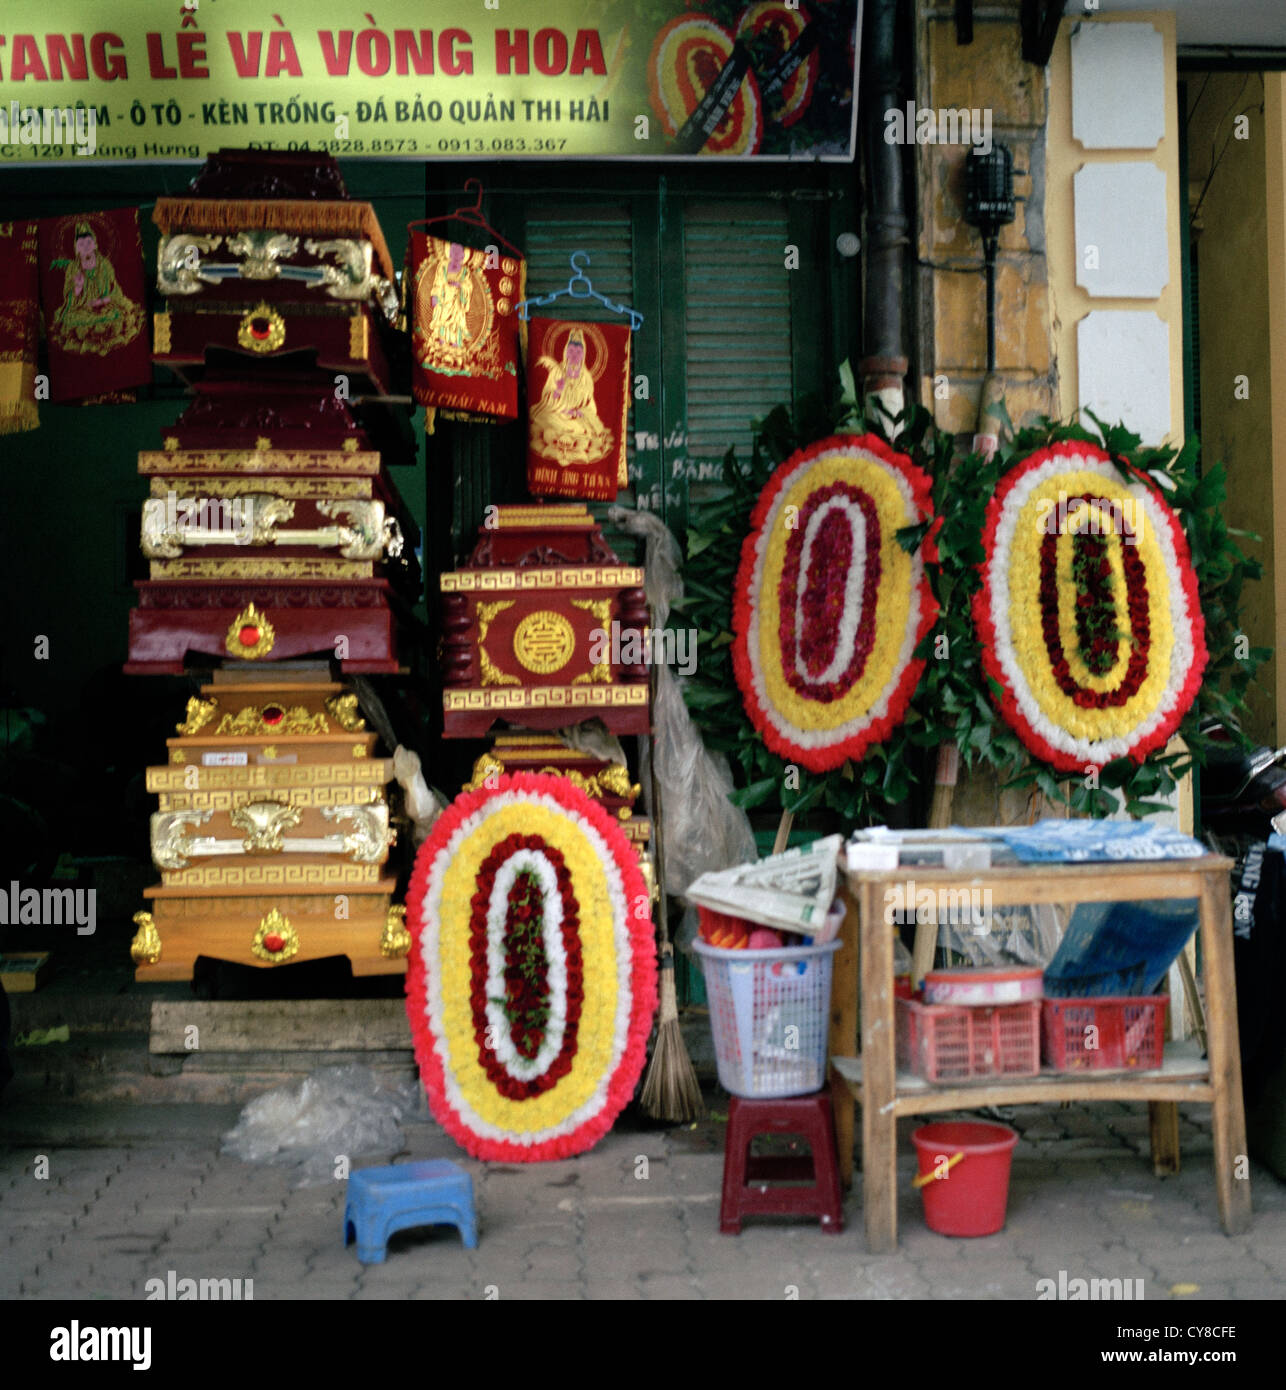 Funeral undertaker in the Old City of Hanoi in Vietnam in Far East Southeast Asia. Coffin Wreath Death Business Stock Photo